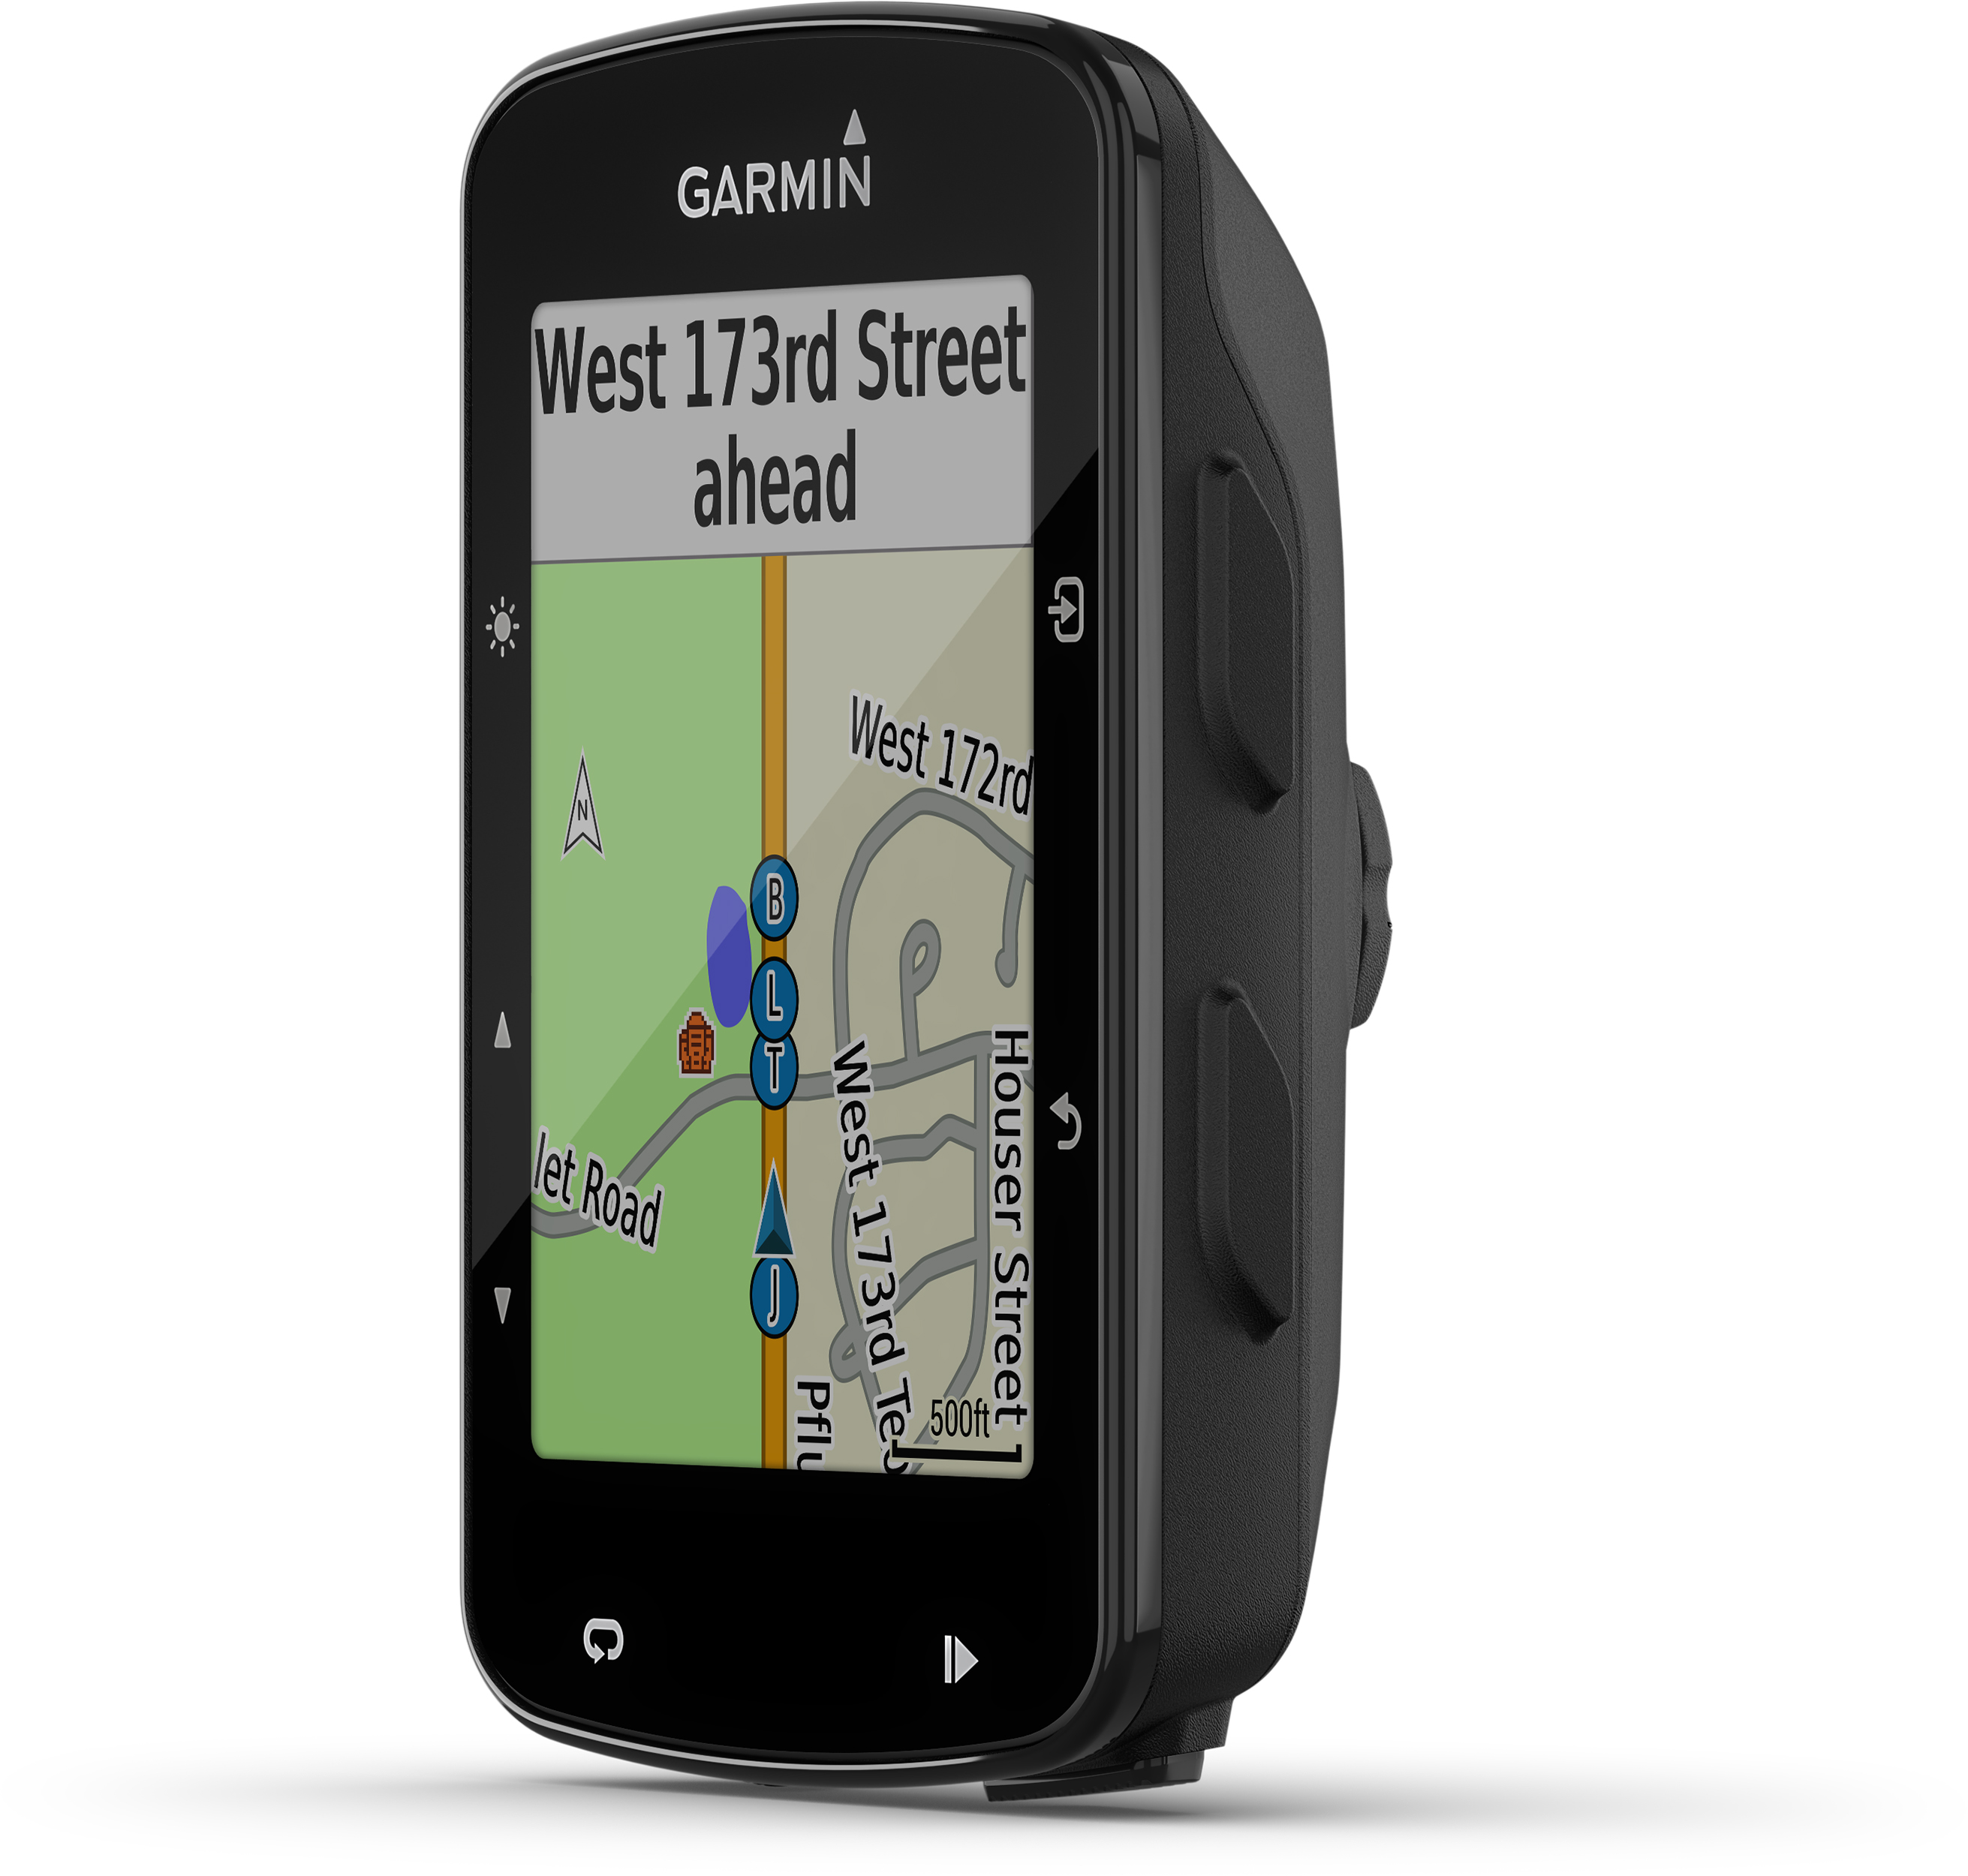 Garmin all products | MEC